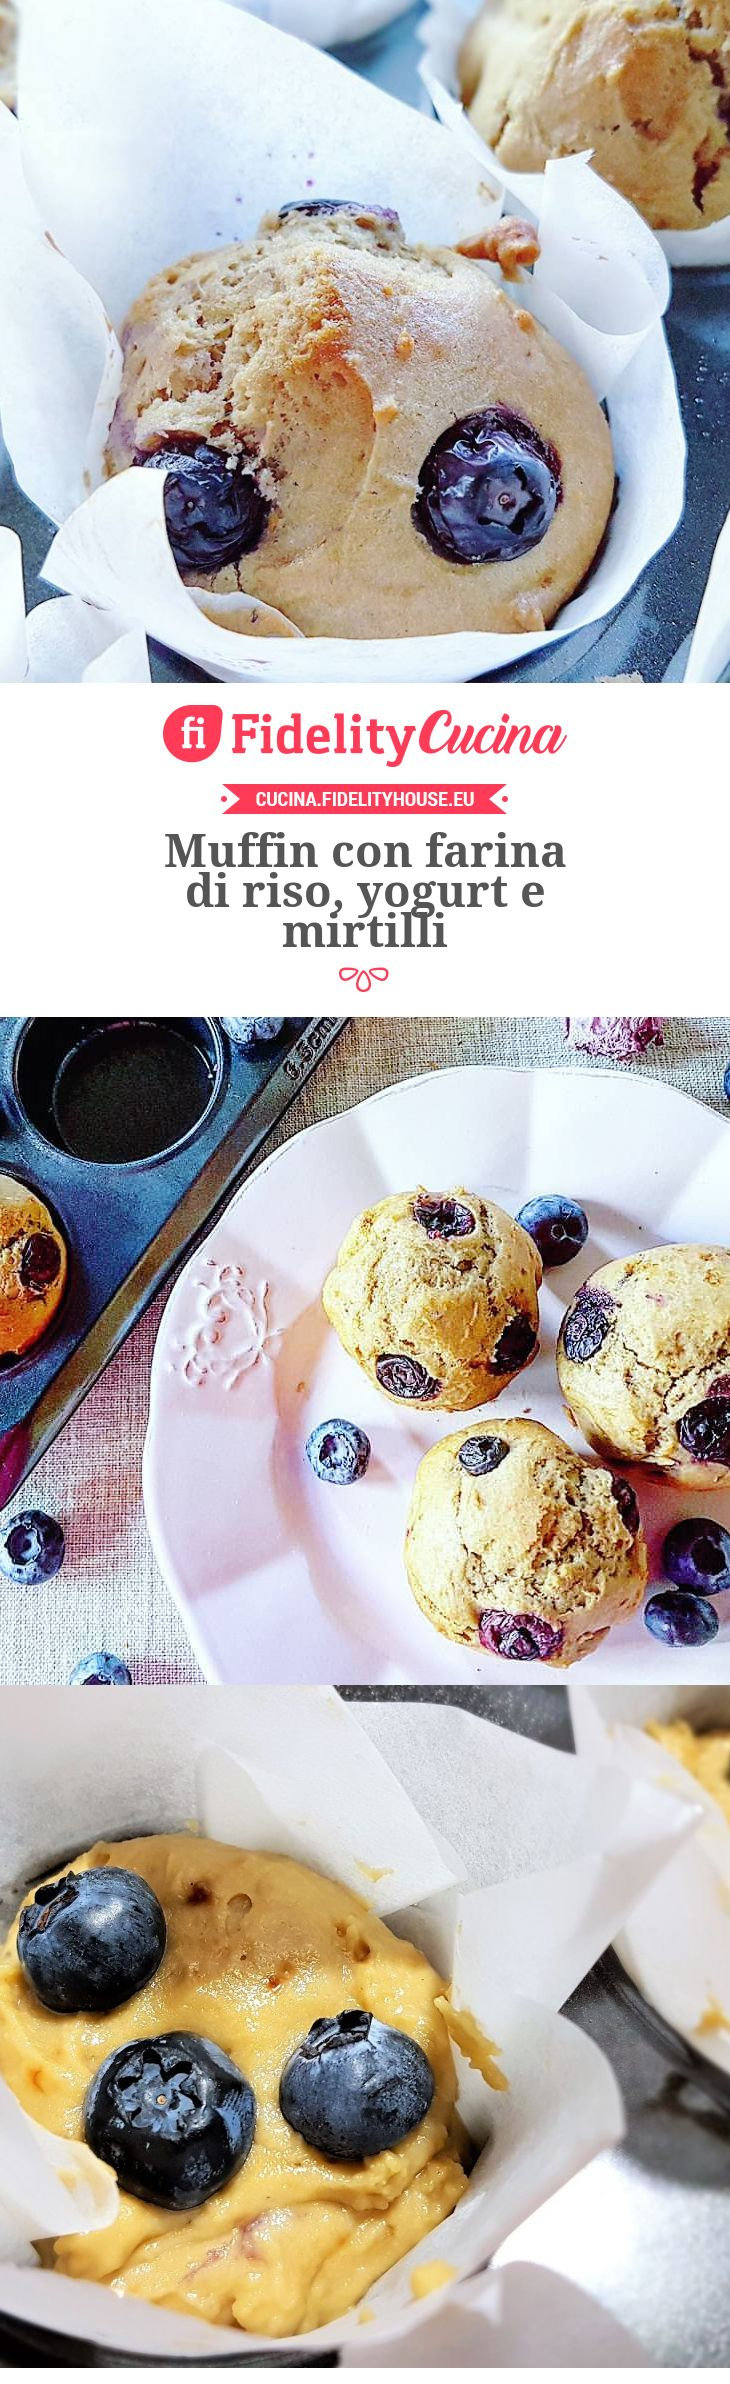 Muffin con farina di riso, yogurt e mirtilli